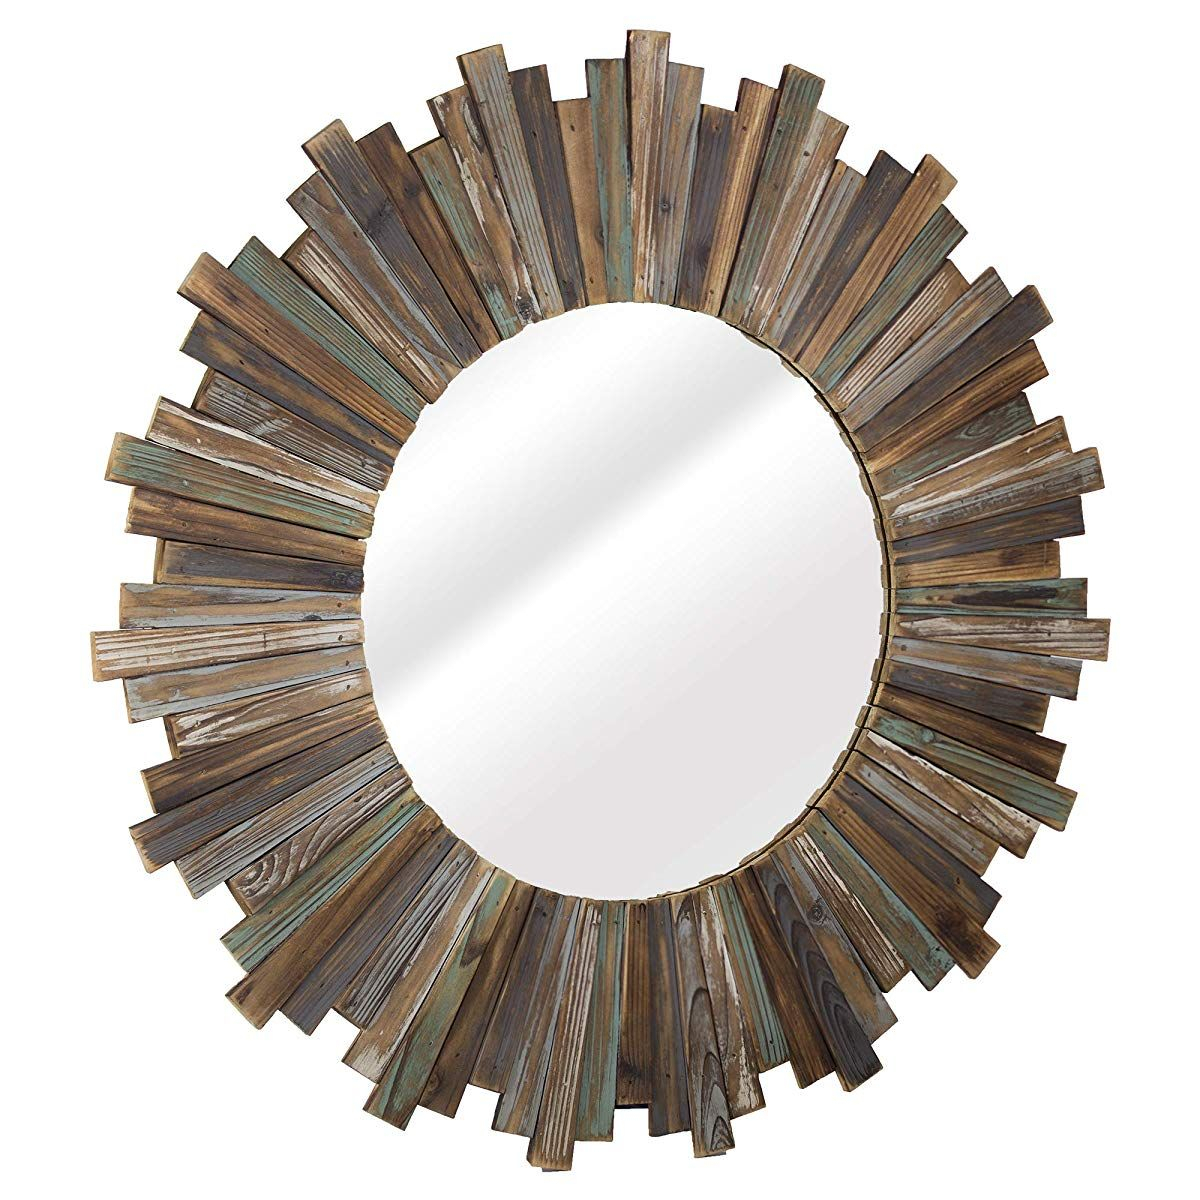 """Distressed Wood 36"""" Round Sunburst Wall Vanity Accent Mirror Within Perillo Burst Wood Accent Mirrors (View 3 of 20)"""